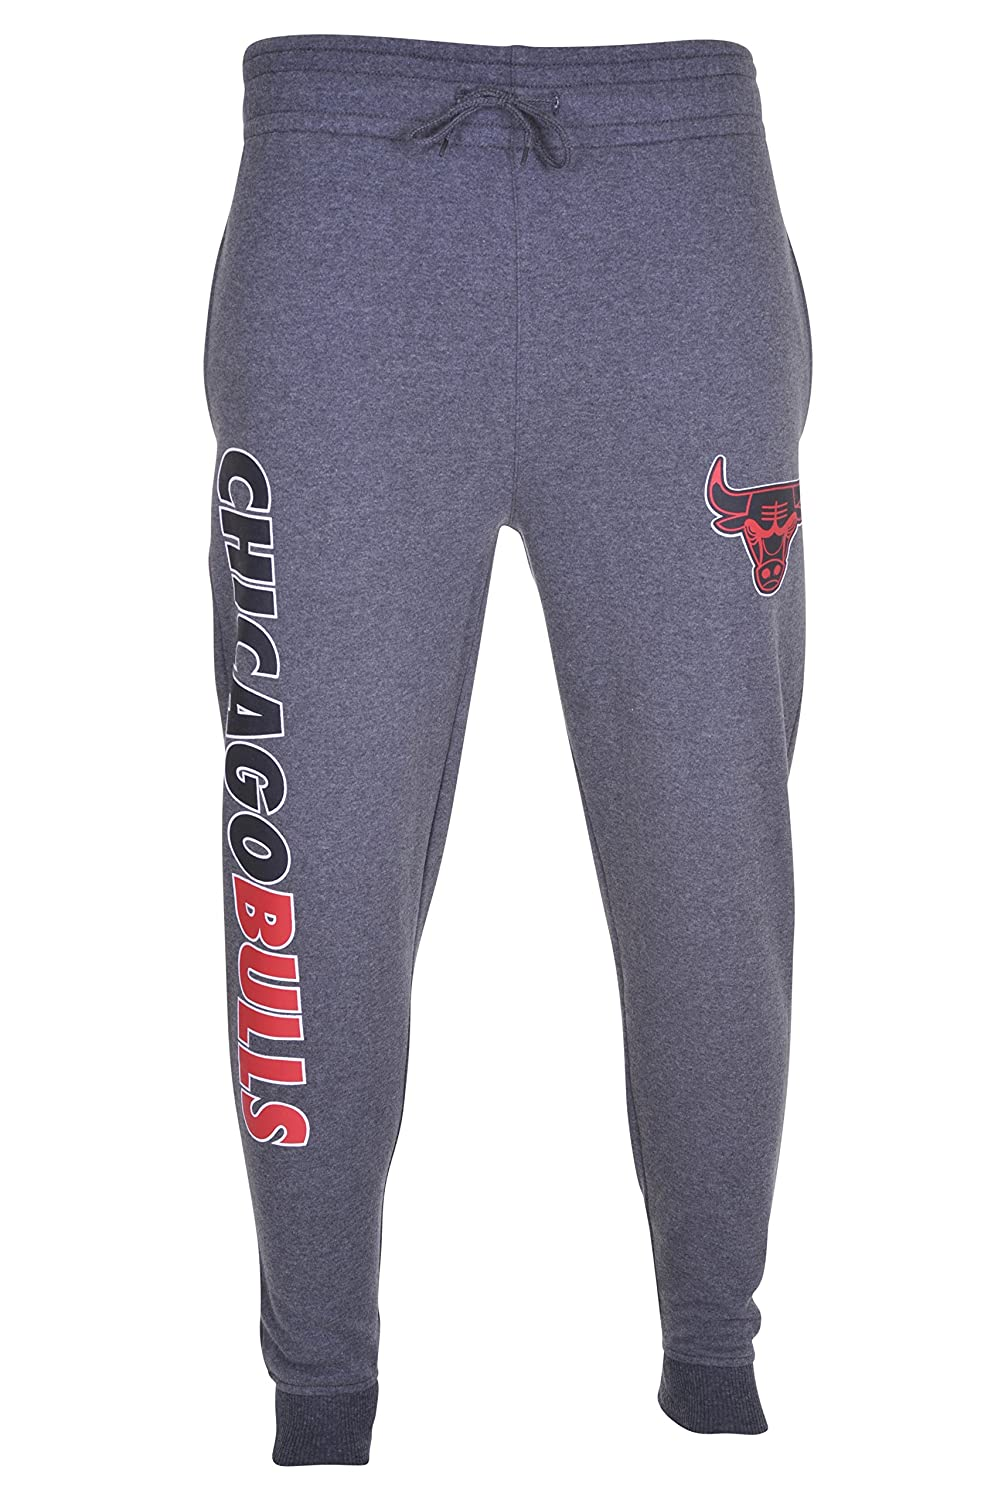 NBA Mens Jogger Pants Active Overtime Fleece Sweatpants Team Logo Gray